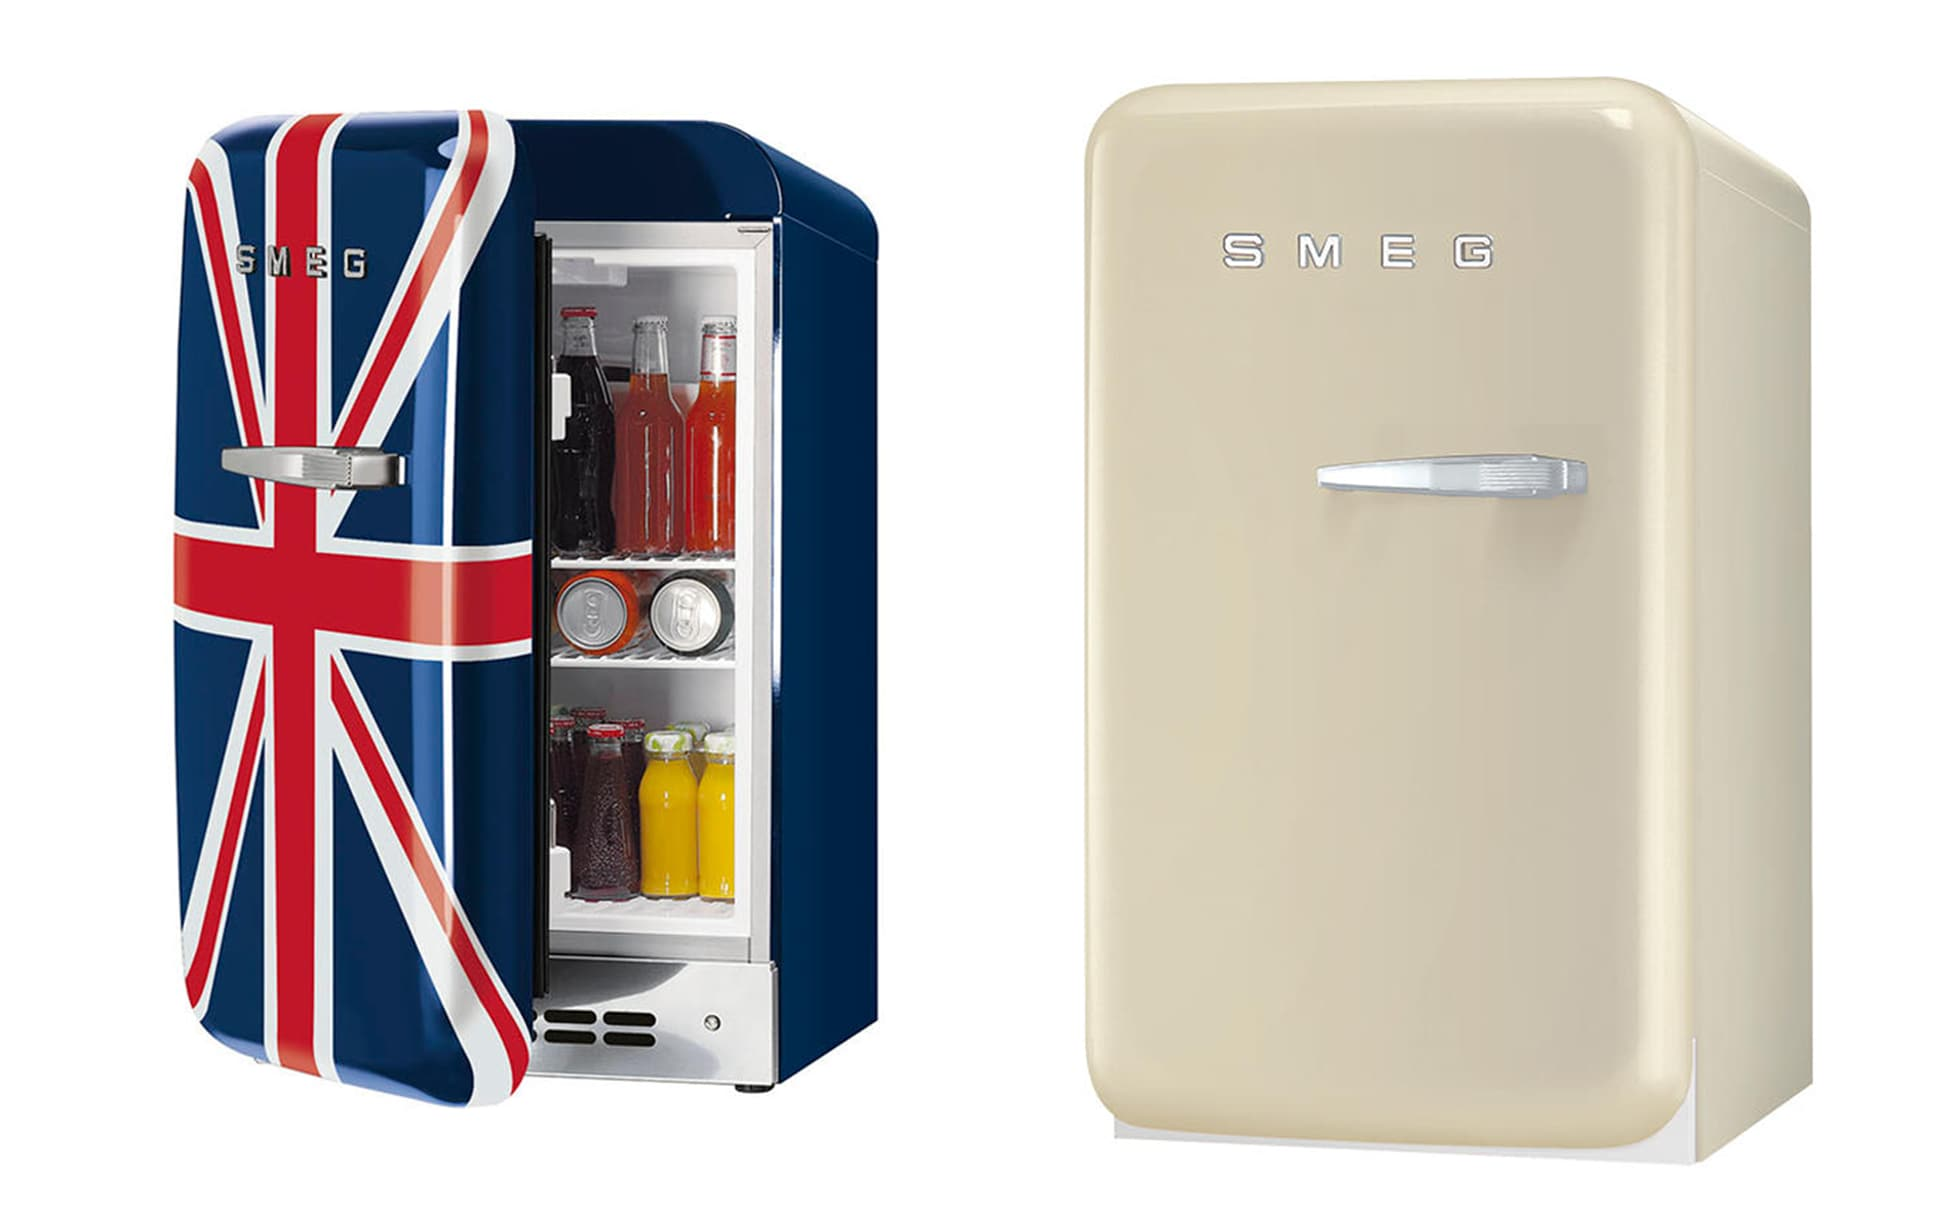 Silvercrest Lidl Opiniones 9 Of The Best Mini Fridges